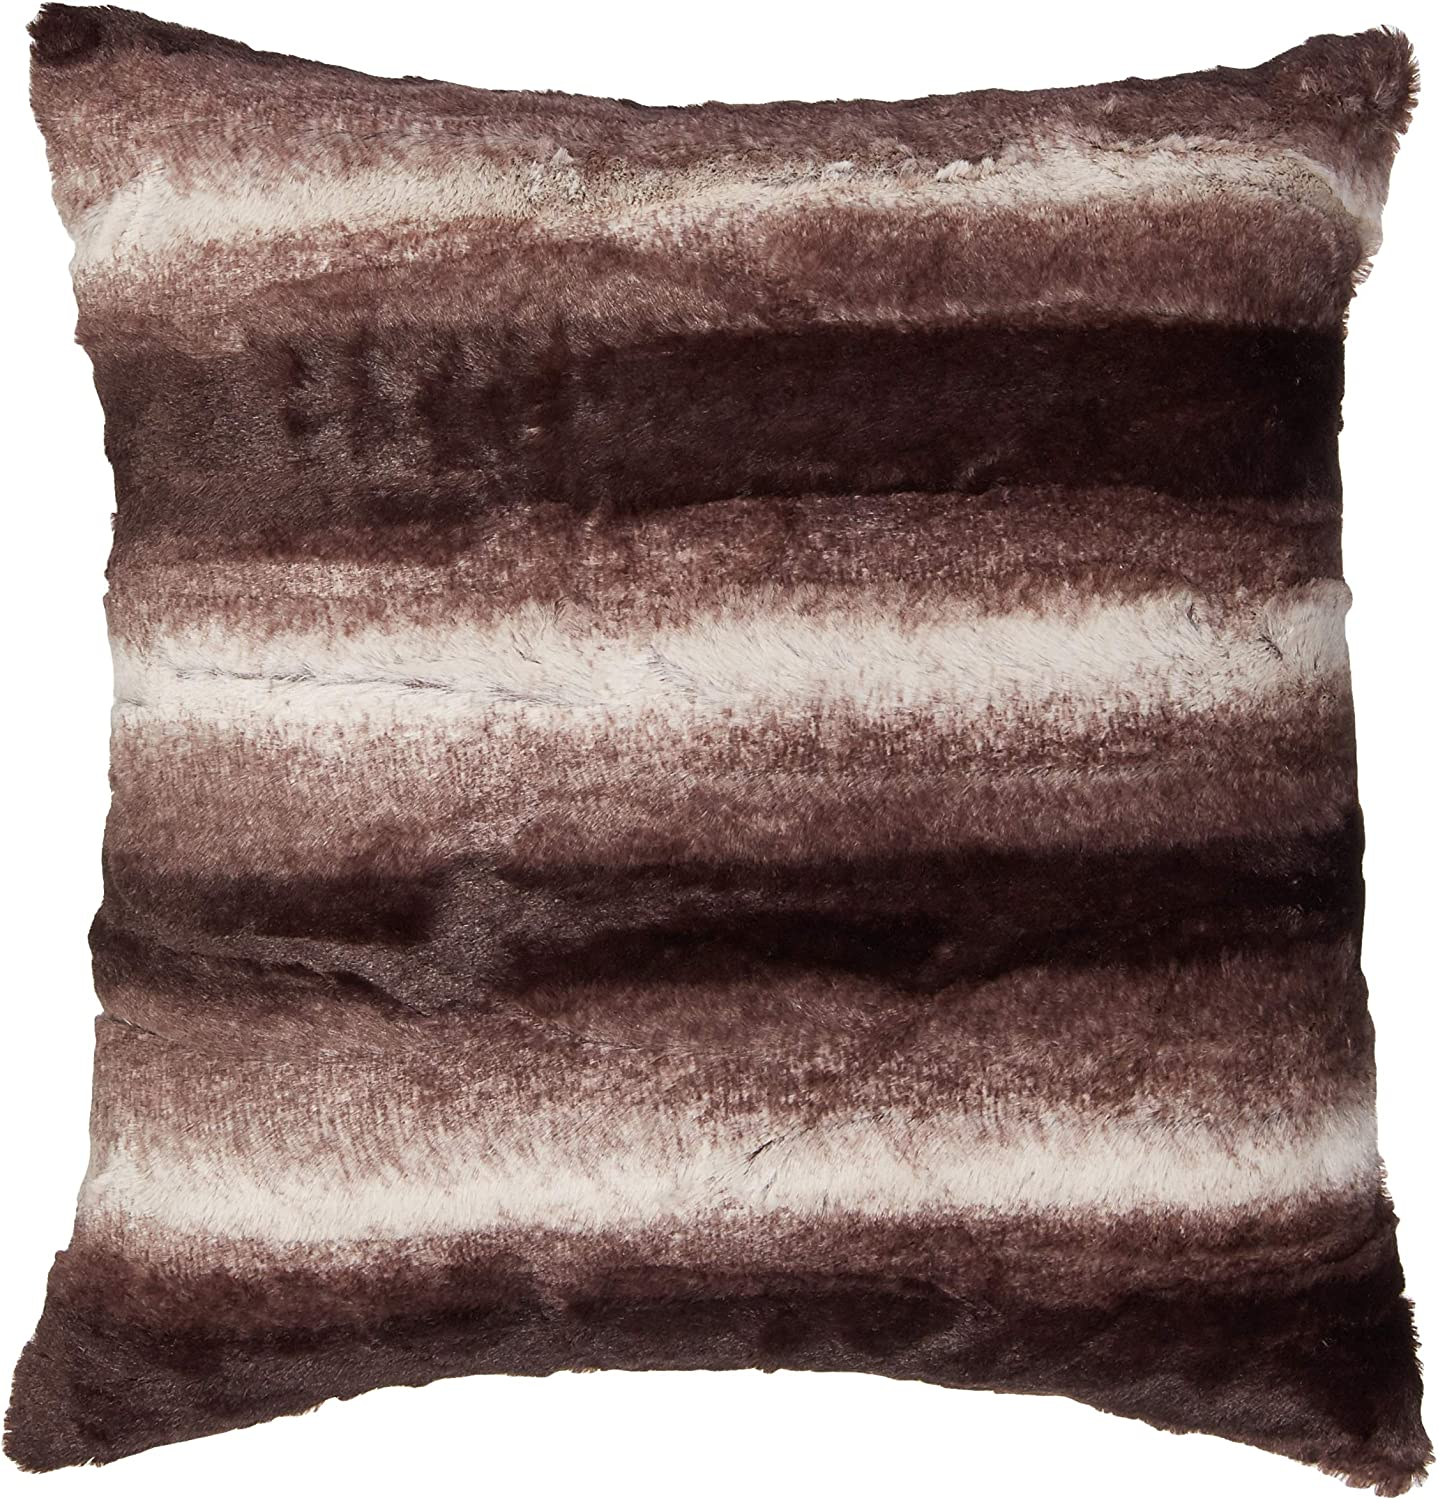 """North End Decor Faux Fur 2-Pack 18""""x18"""" with Insert, Mink Brown White Striped Plush Throw Pillows, 18x18 Stuffed"""